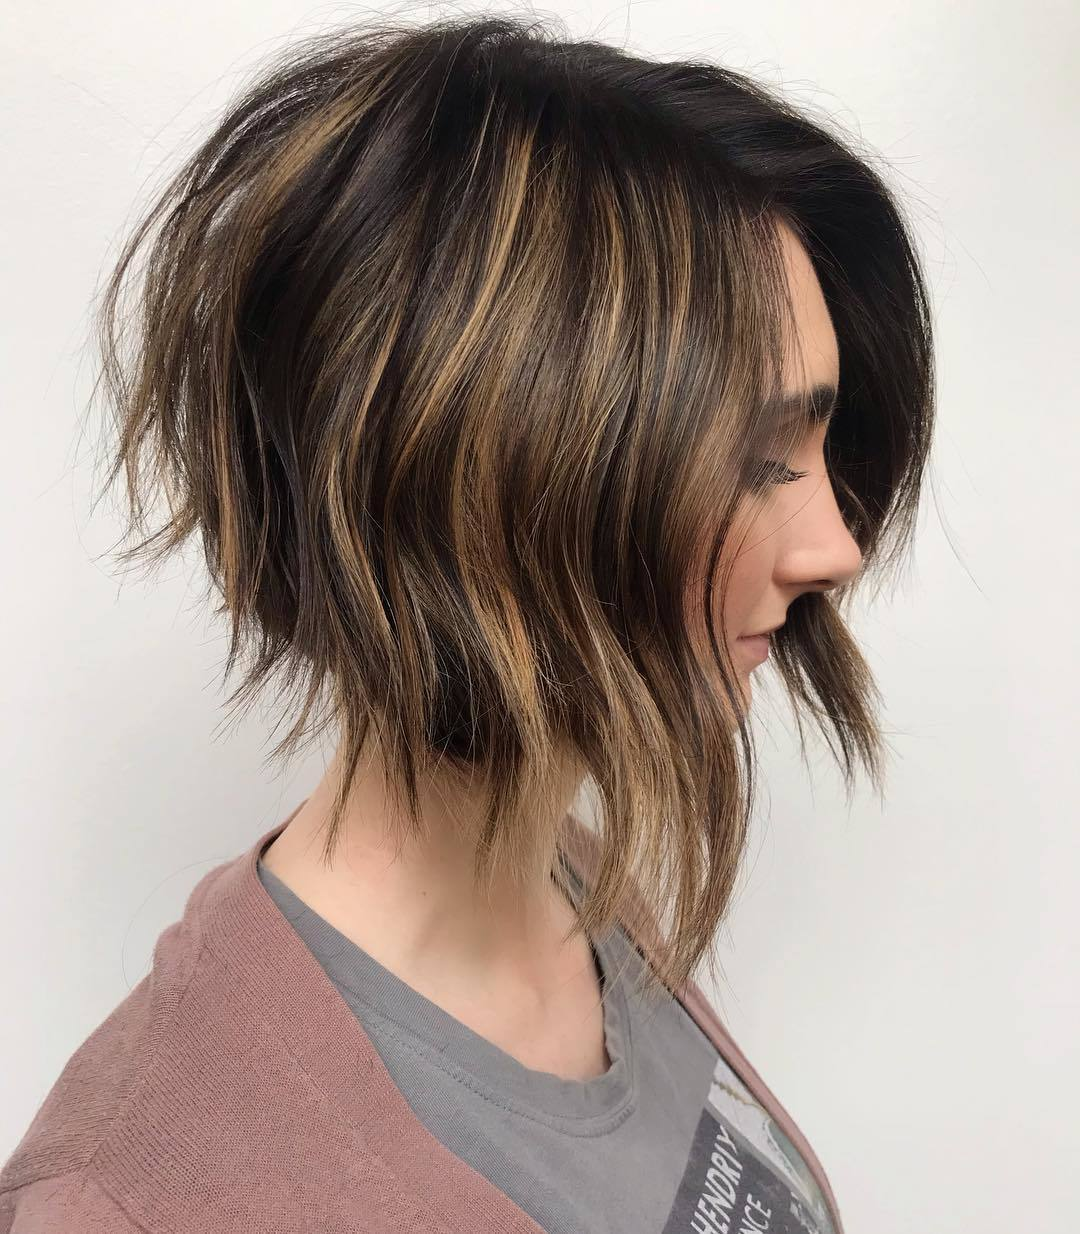 Graduated bob: Woman with dark brown graduated bob with blonde highlights with long wisps at the front